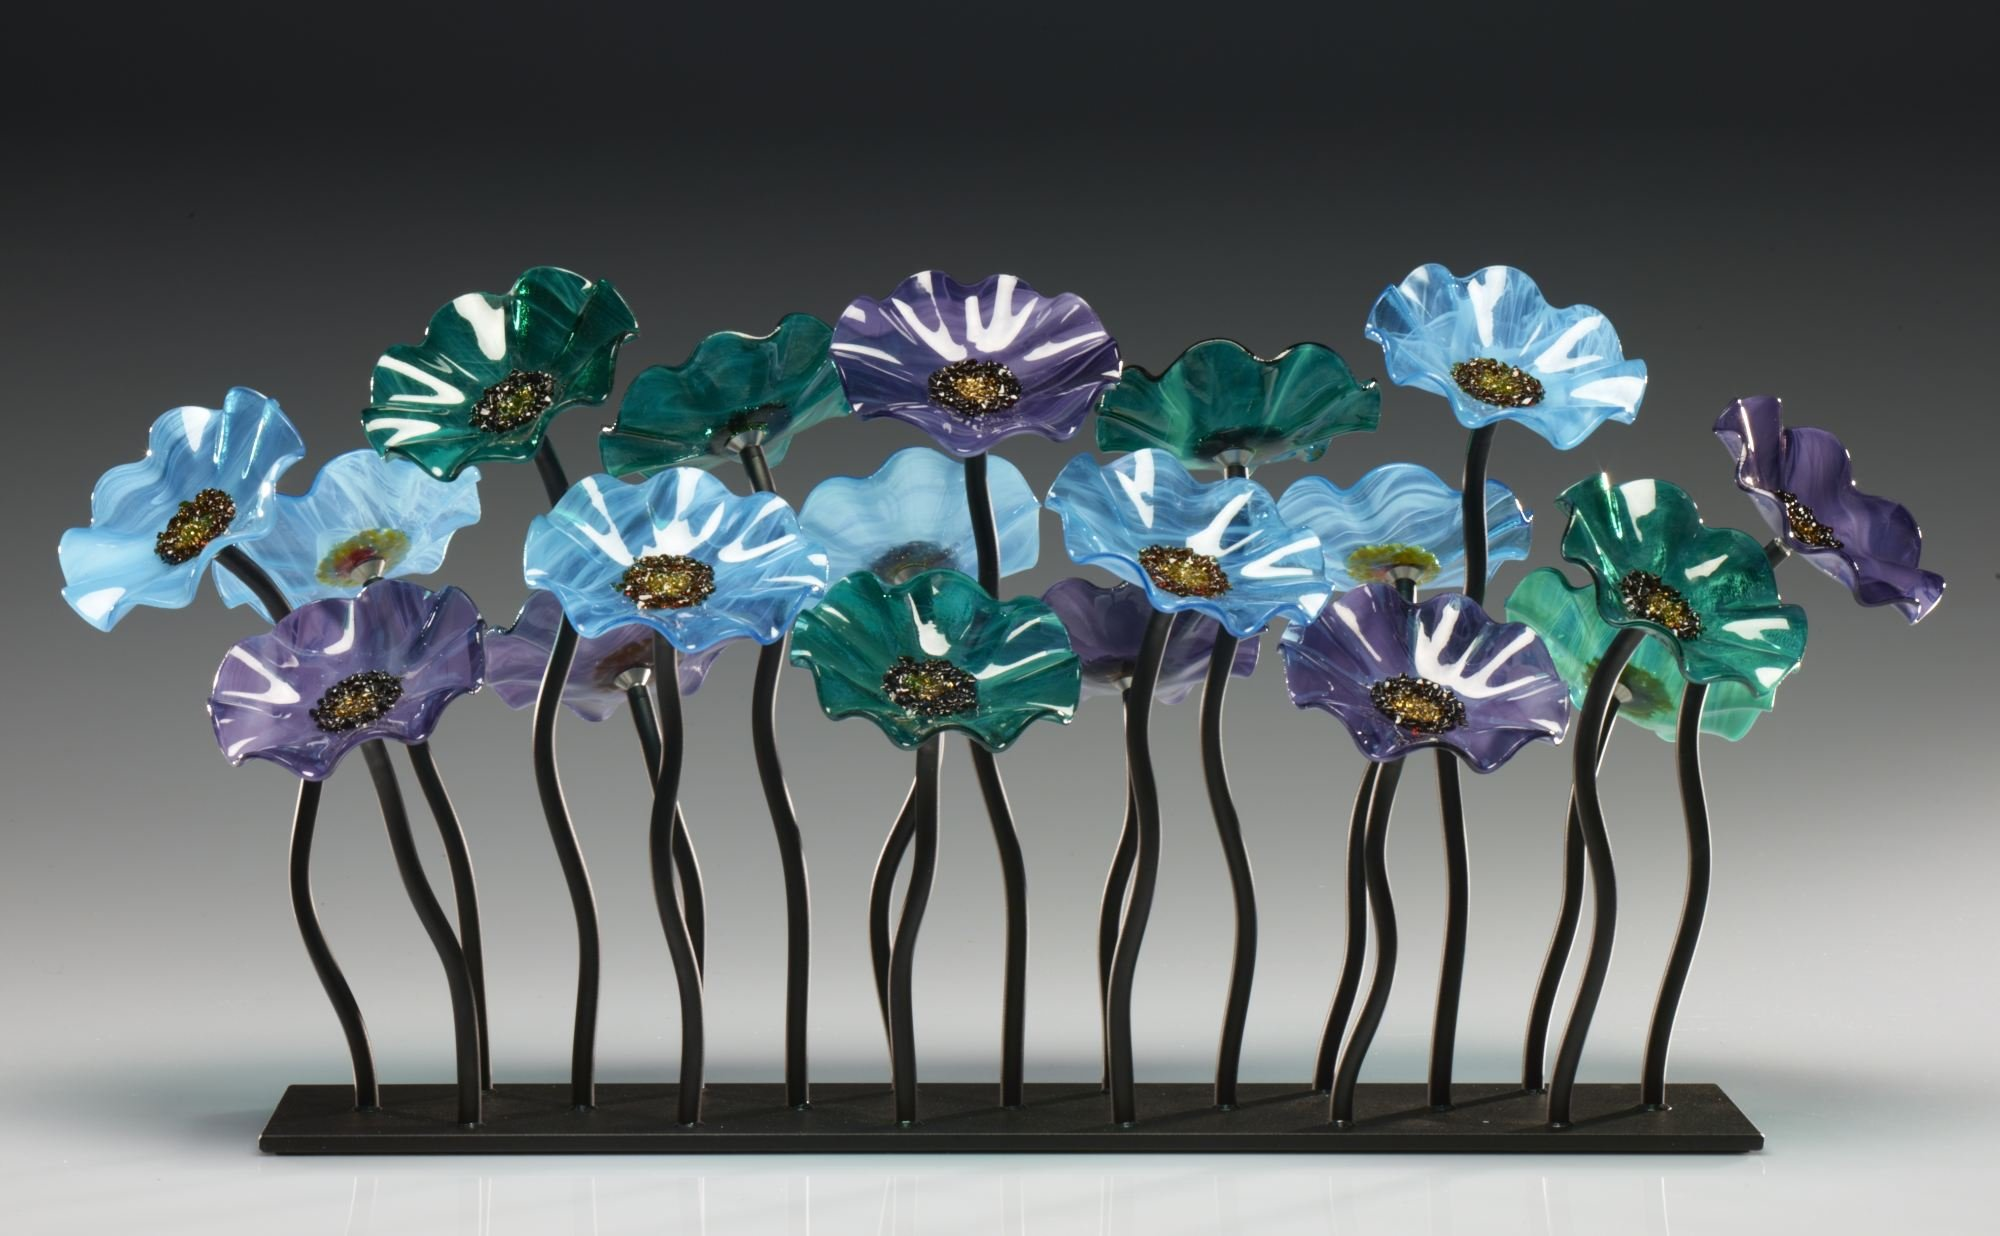 Topaz Glass Flower Garden by Scott Johnson and Shawn ...